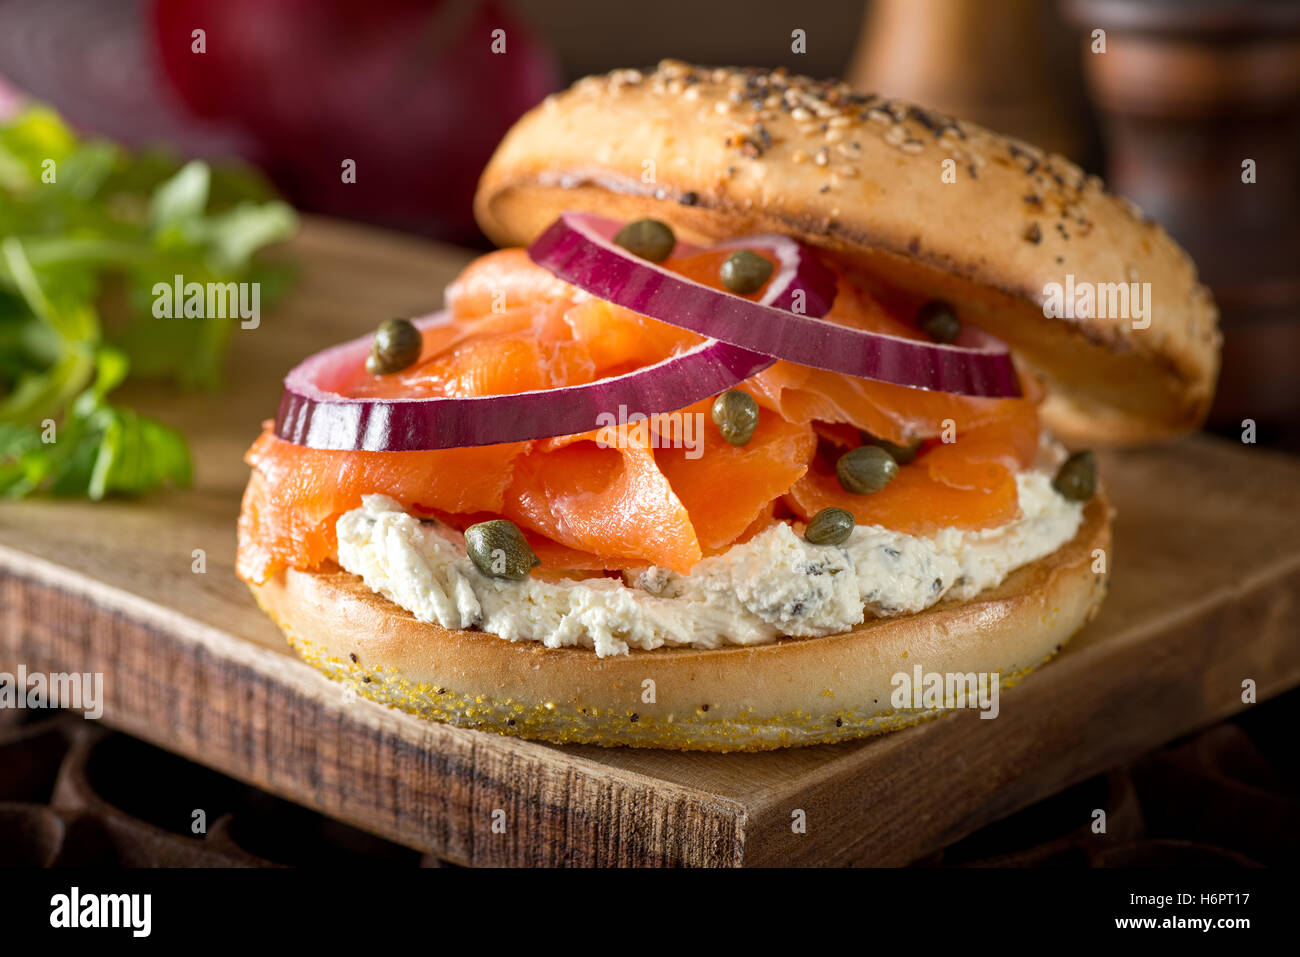 A delicious toasted bagel with smoked salmon, cream cheese, capers, and red onion. - Stock Image